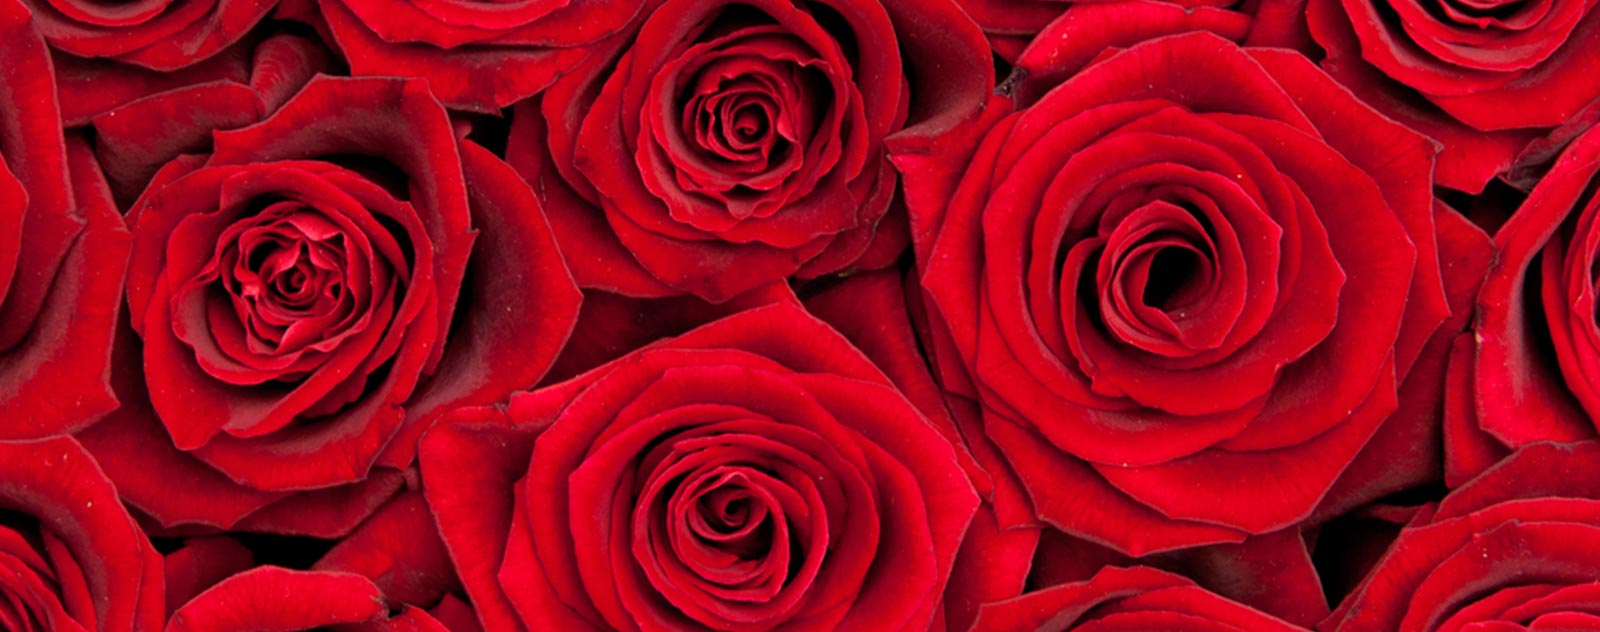 rose-expression-amour